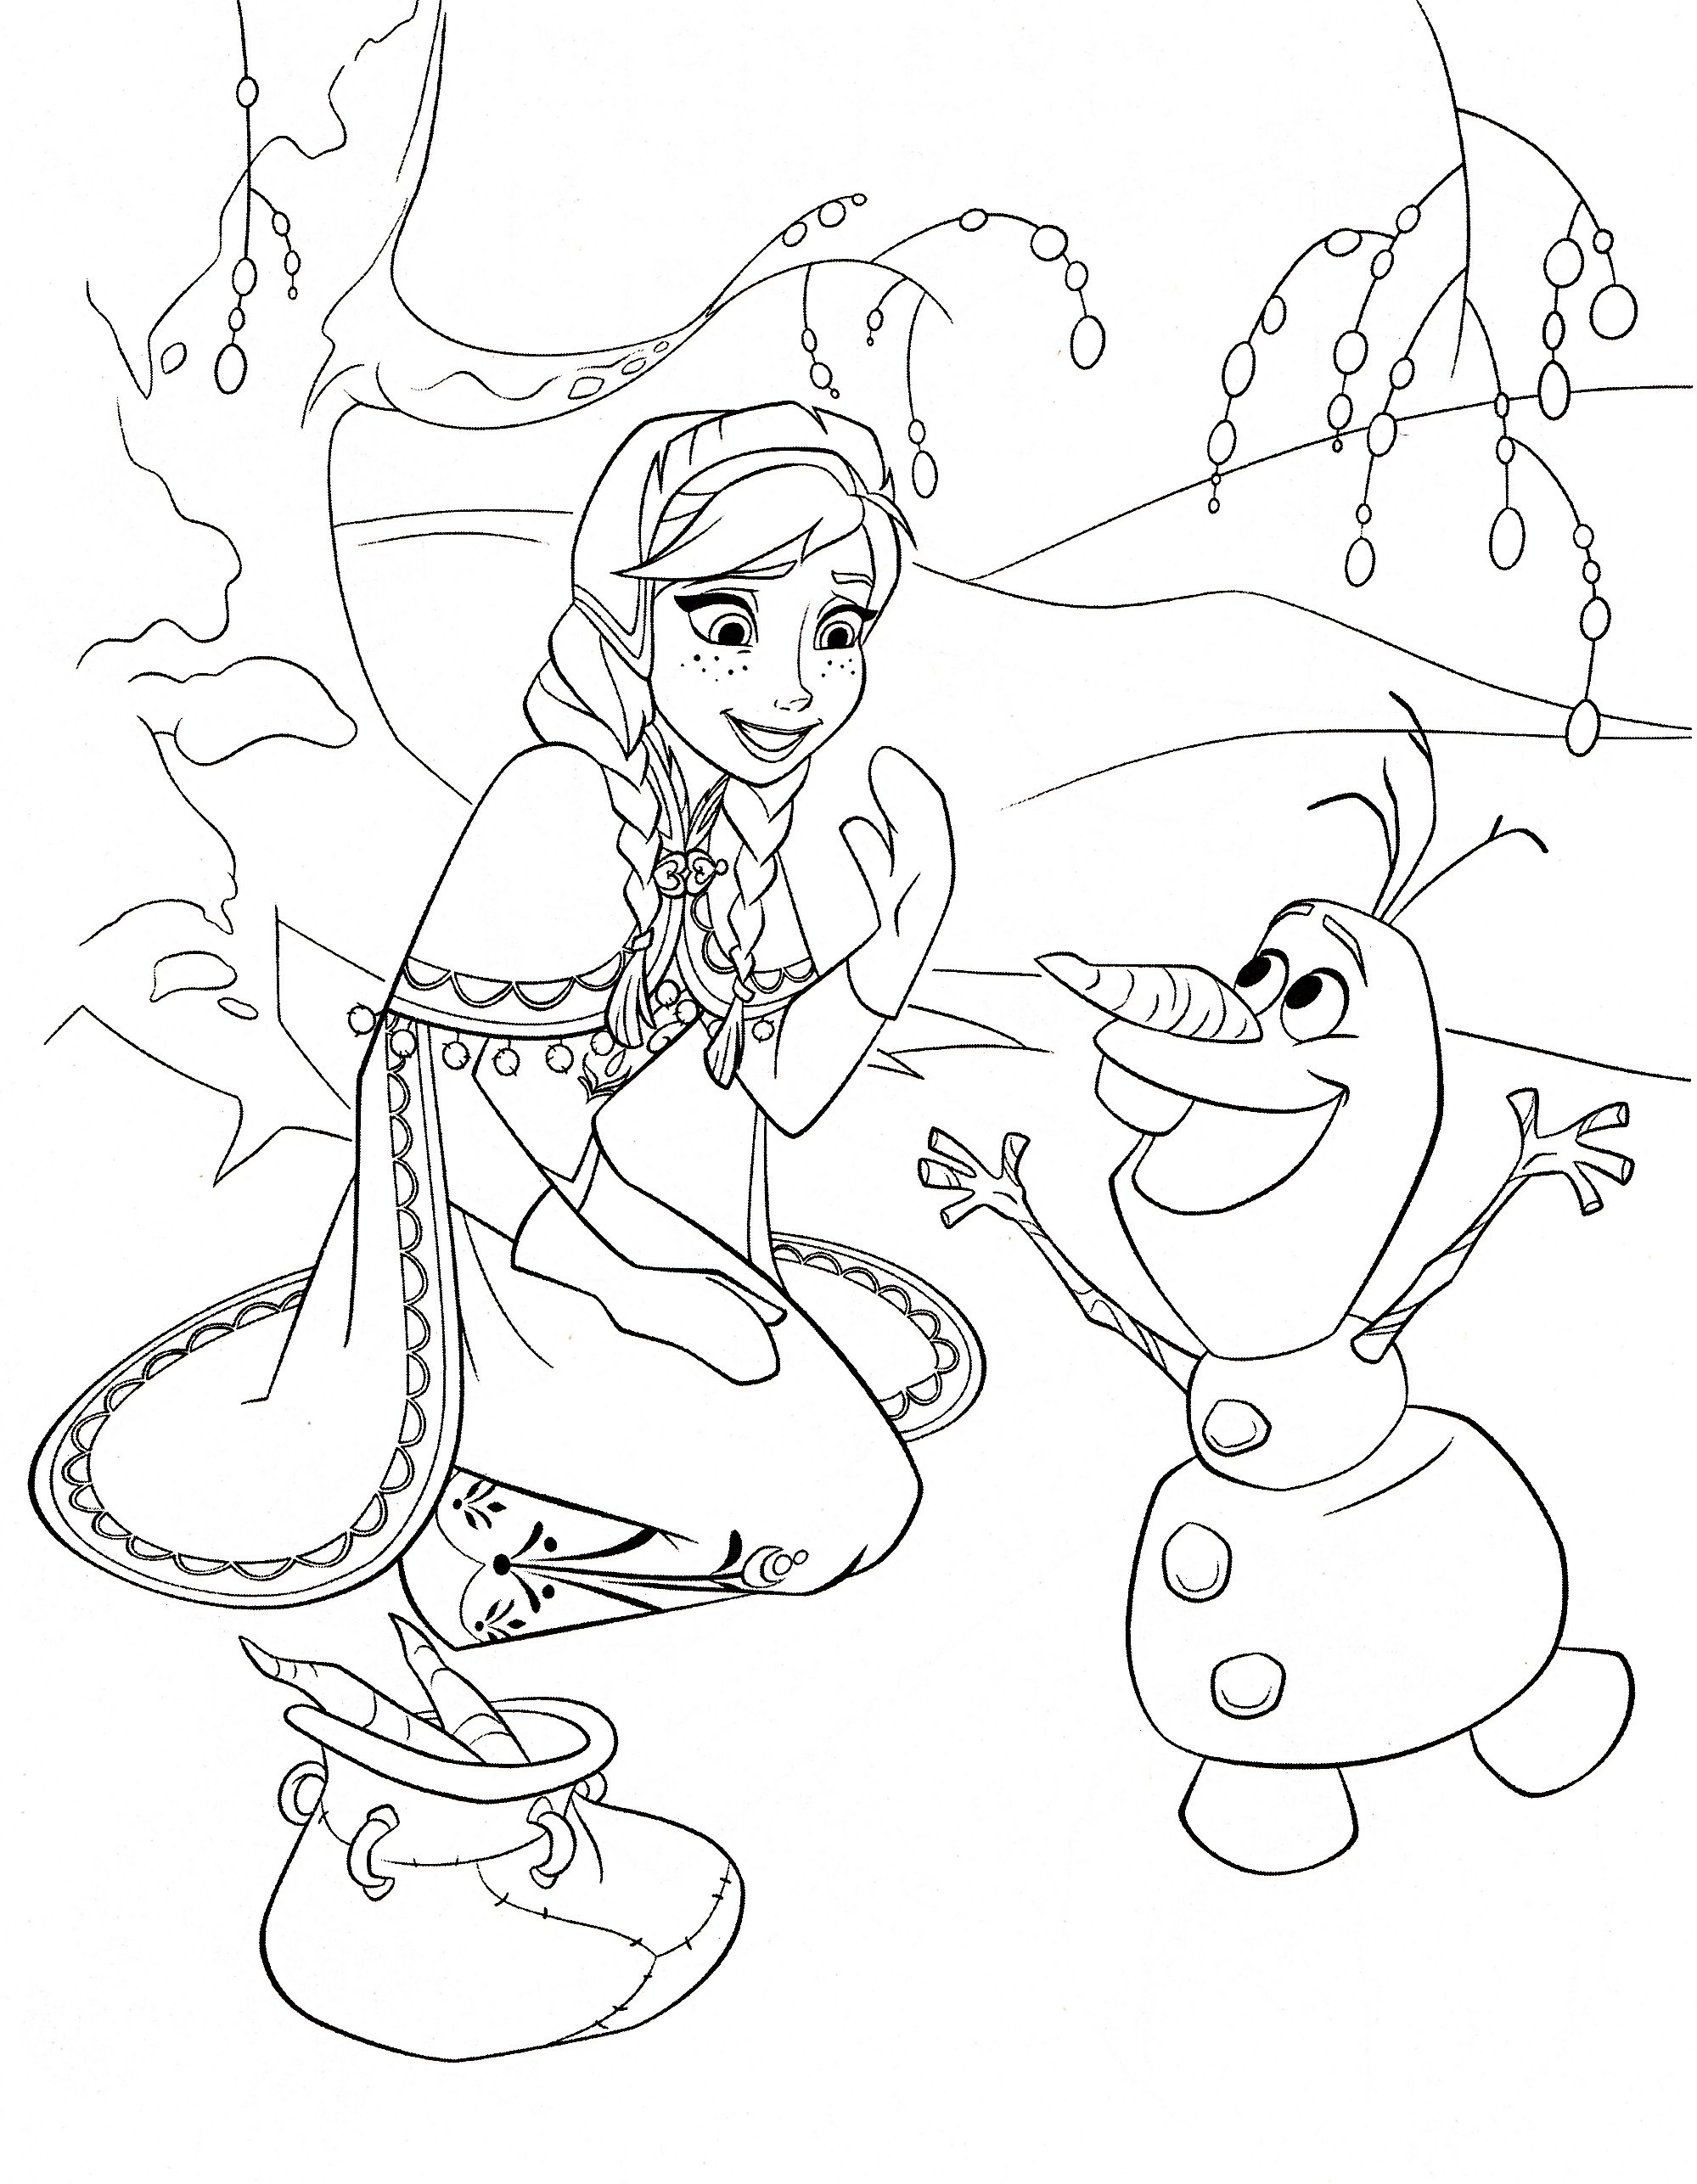 Free frozen printable coloring activity pages plus free computer games